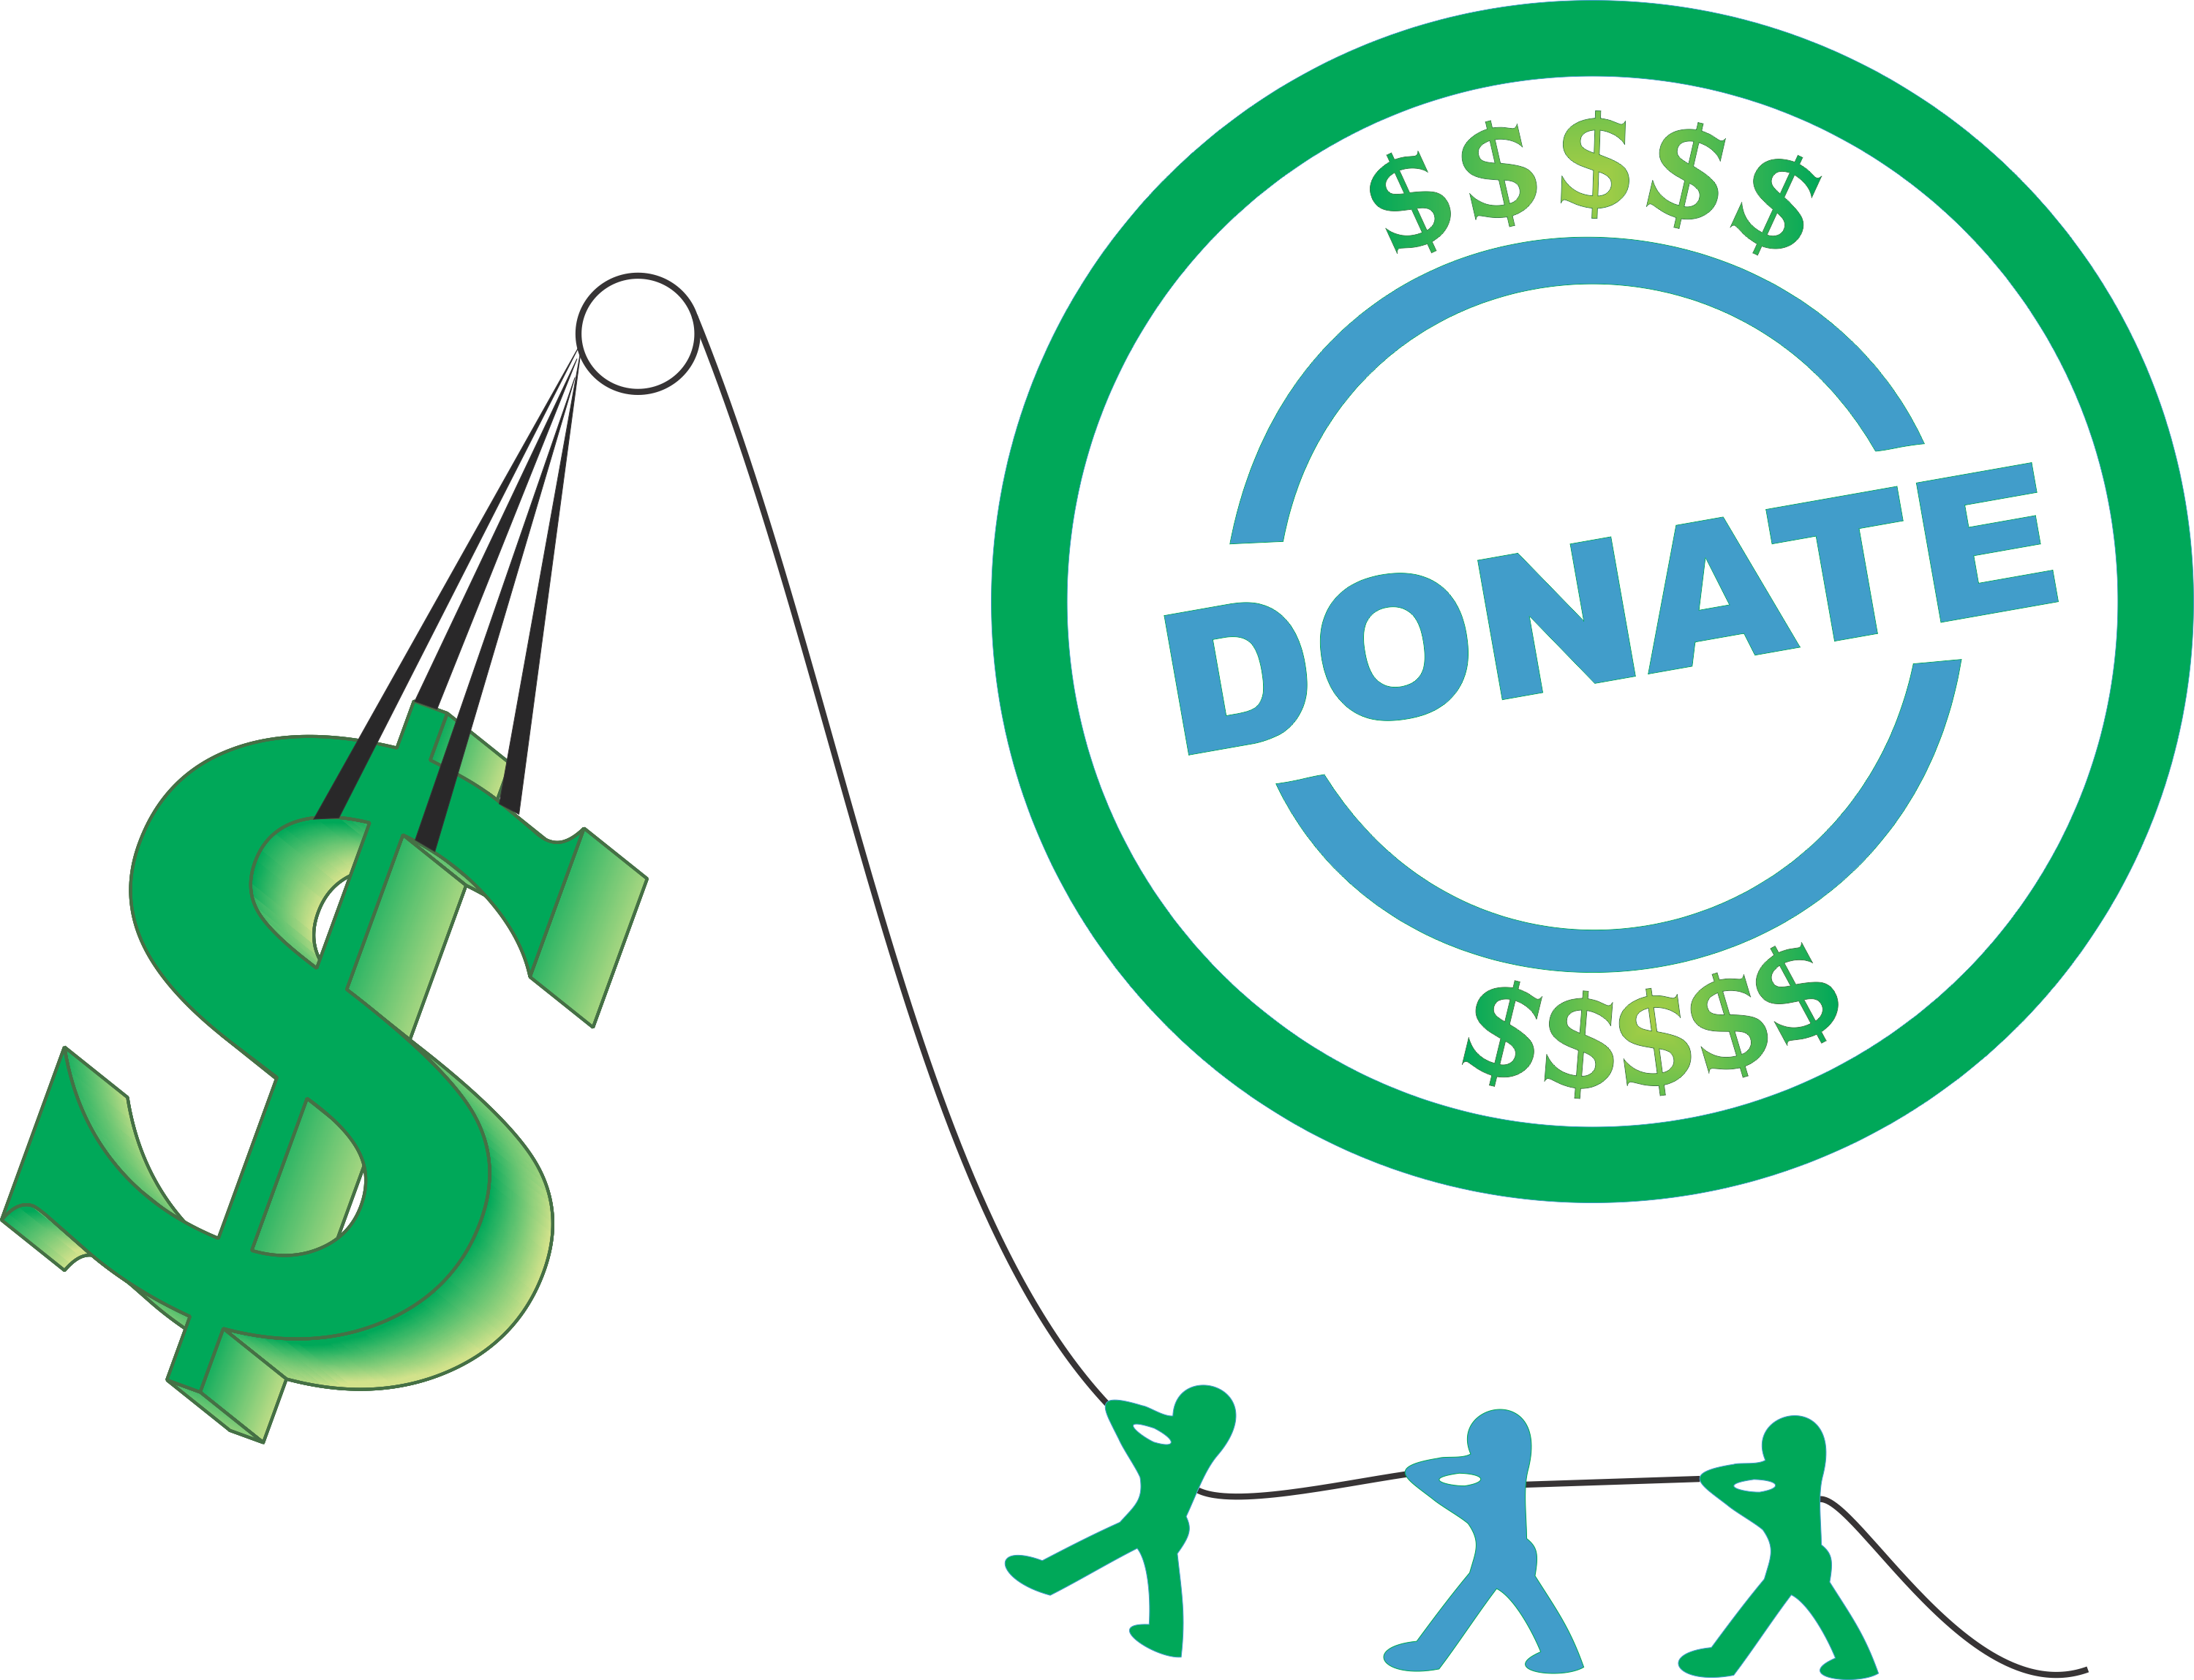 Advancement fundraising clipart clipart images gallery for.